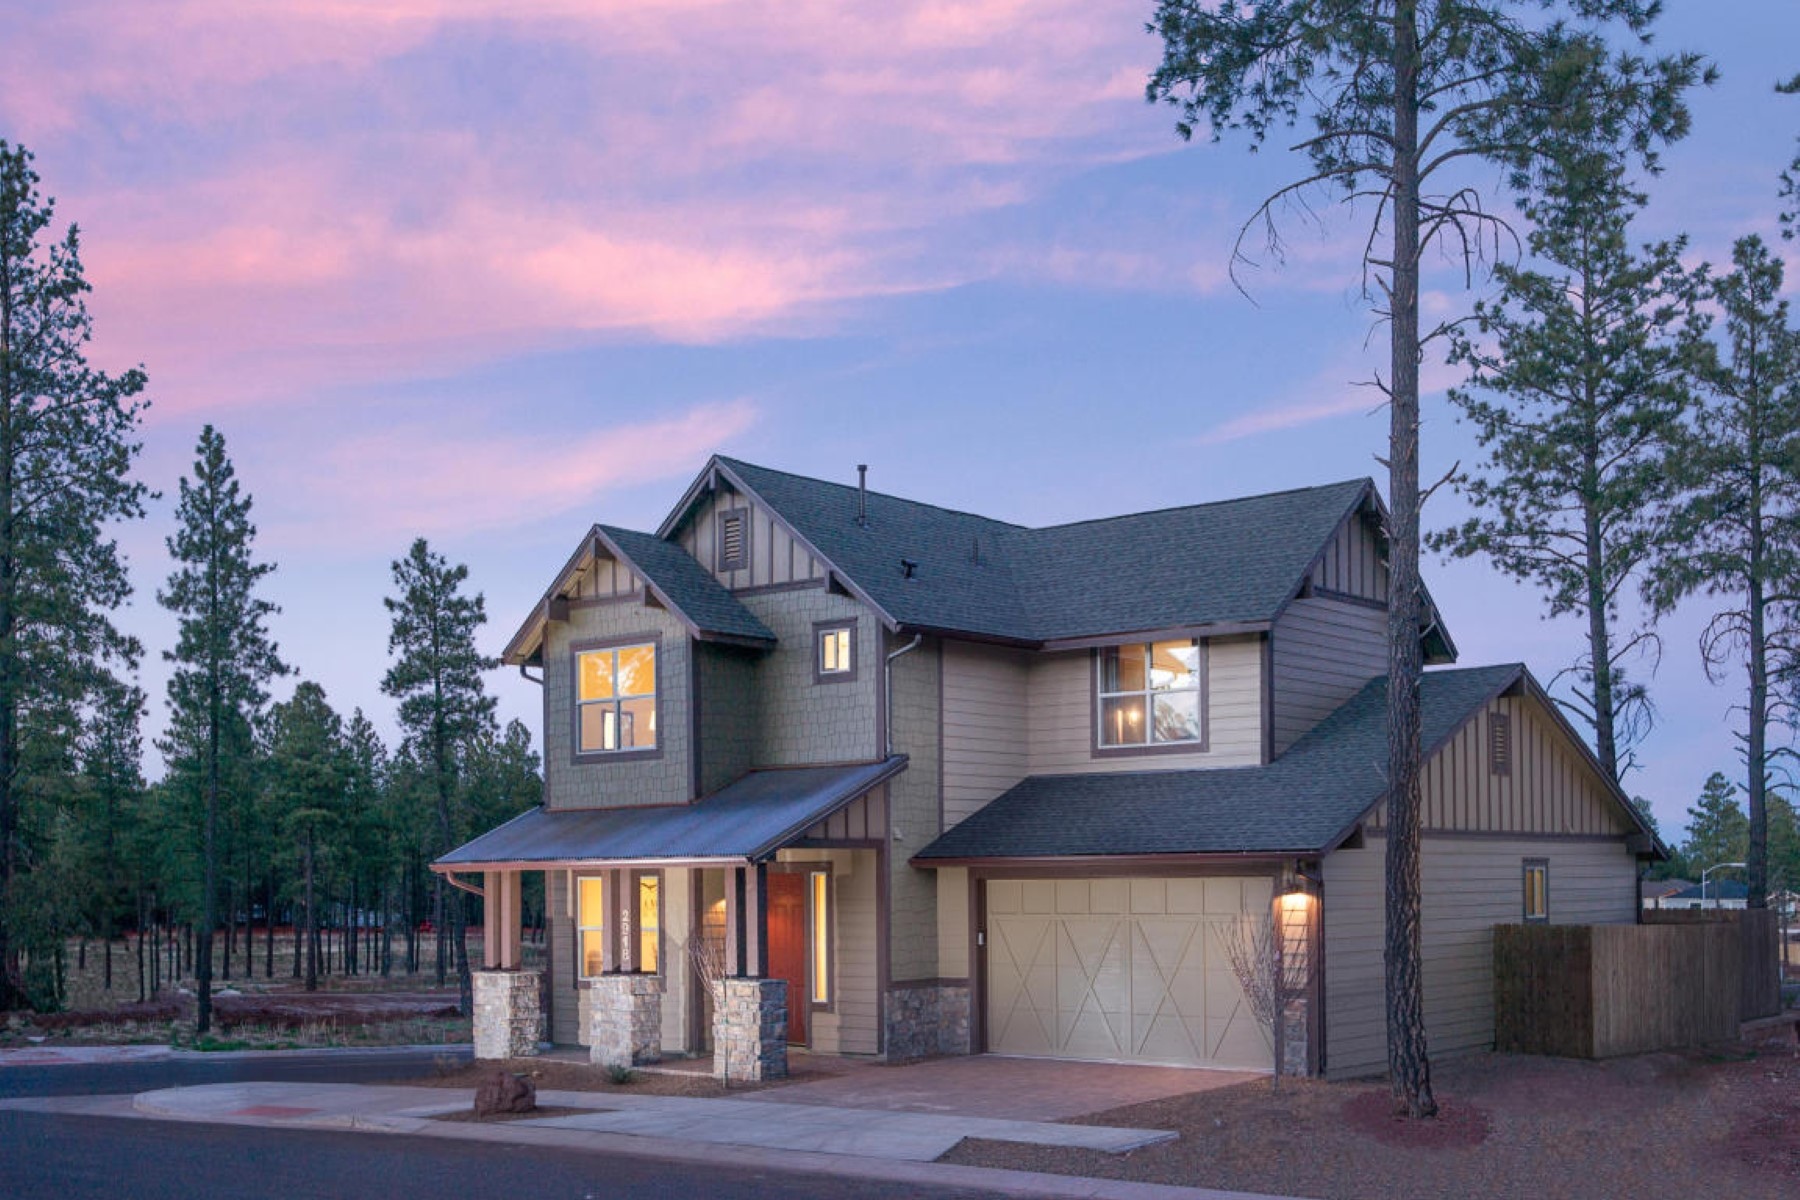 Single Family Home for Sale at Quality construction on lot 20B 2837 W Pico Del Monte Lot 20B CIR Flagstaff, Arizona, 86001 United States